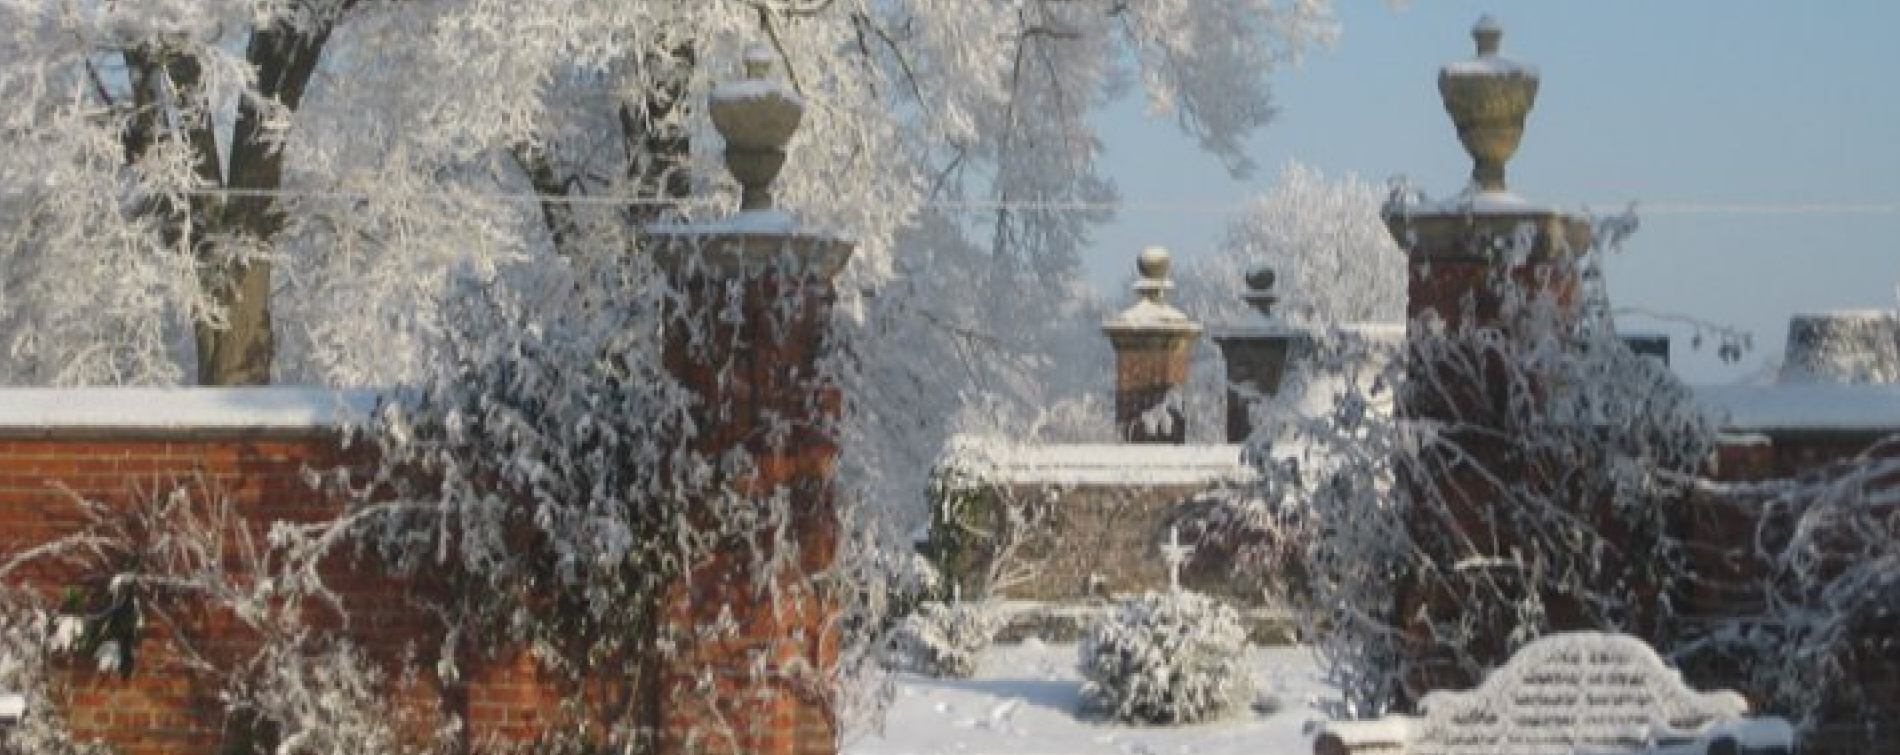 Gardens in the Snow Soulton